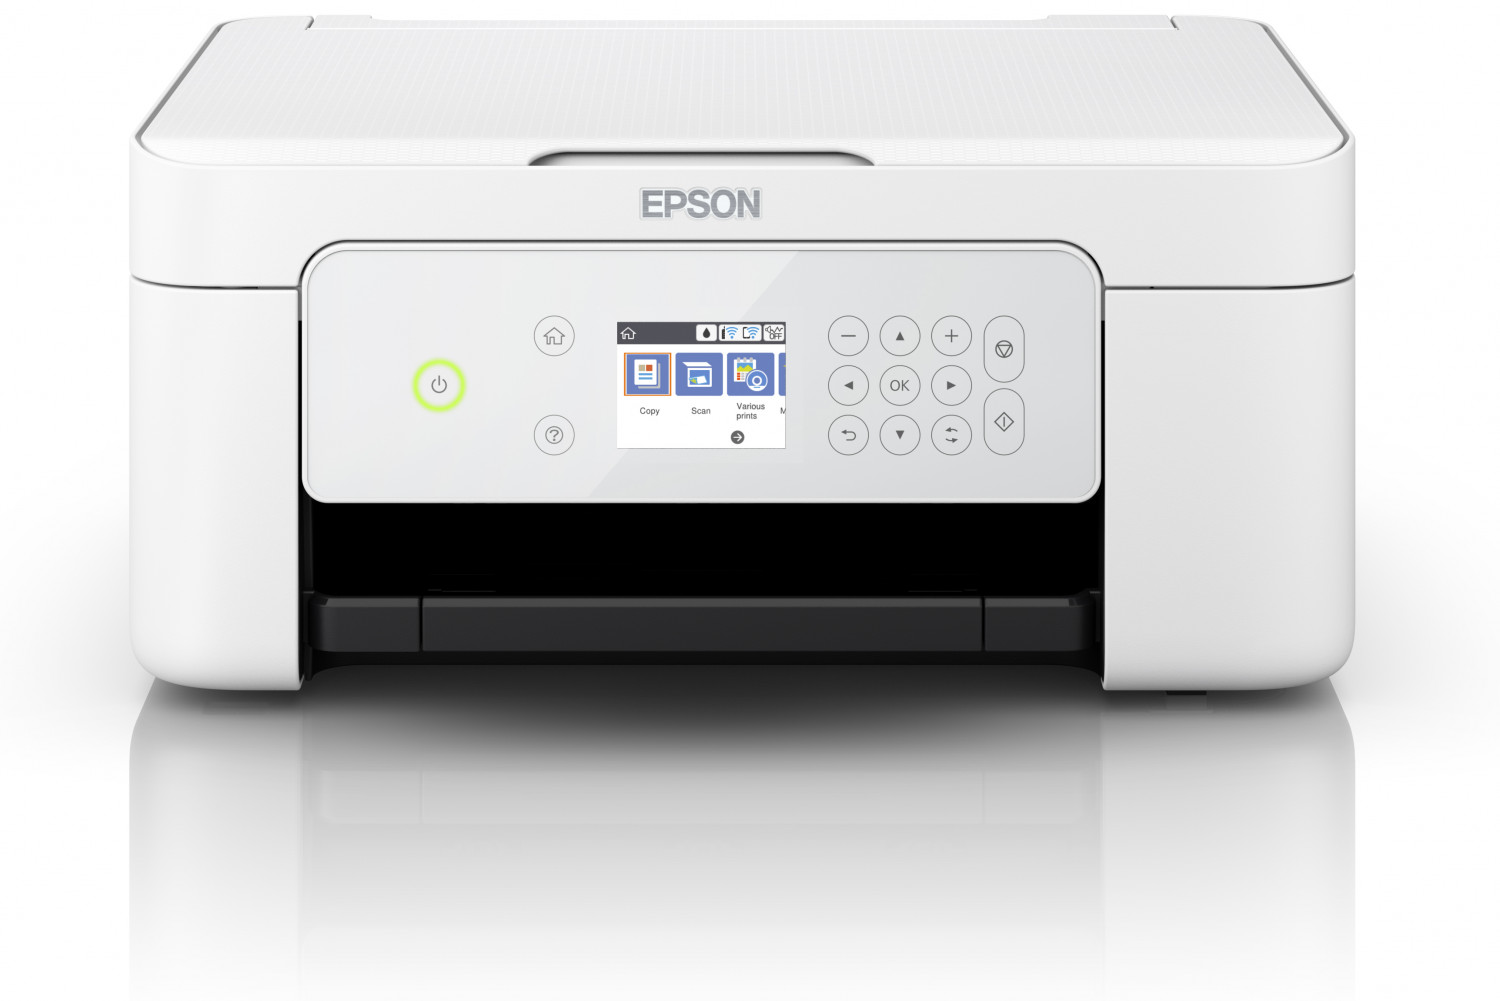 Continuous ink system printer bundle for the Epson XP-4100 or 4105 A4 printer #2